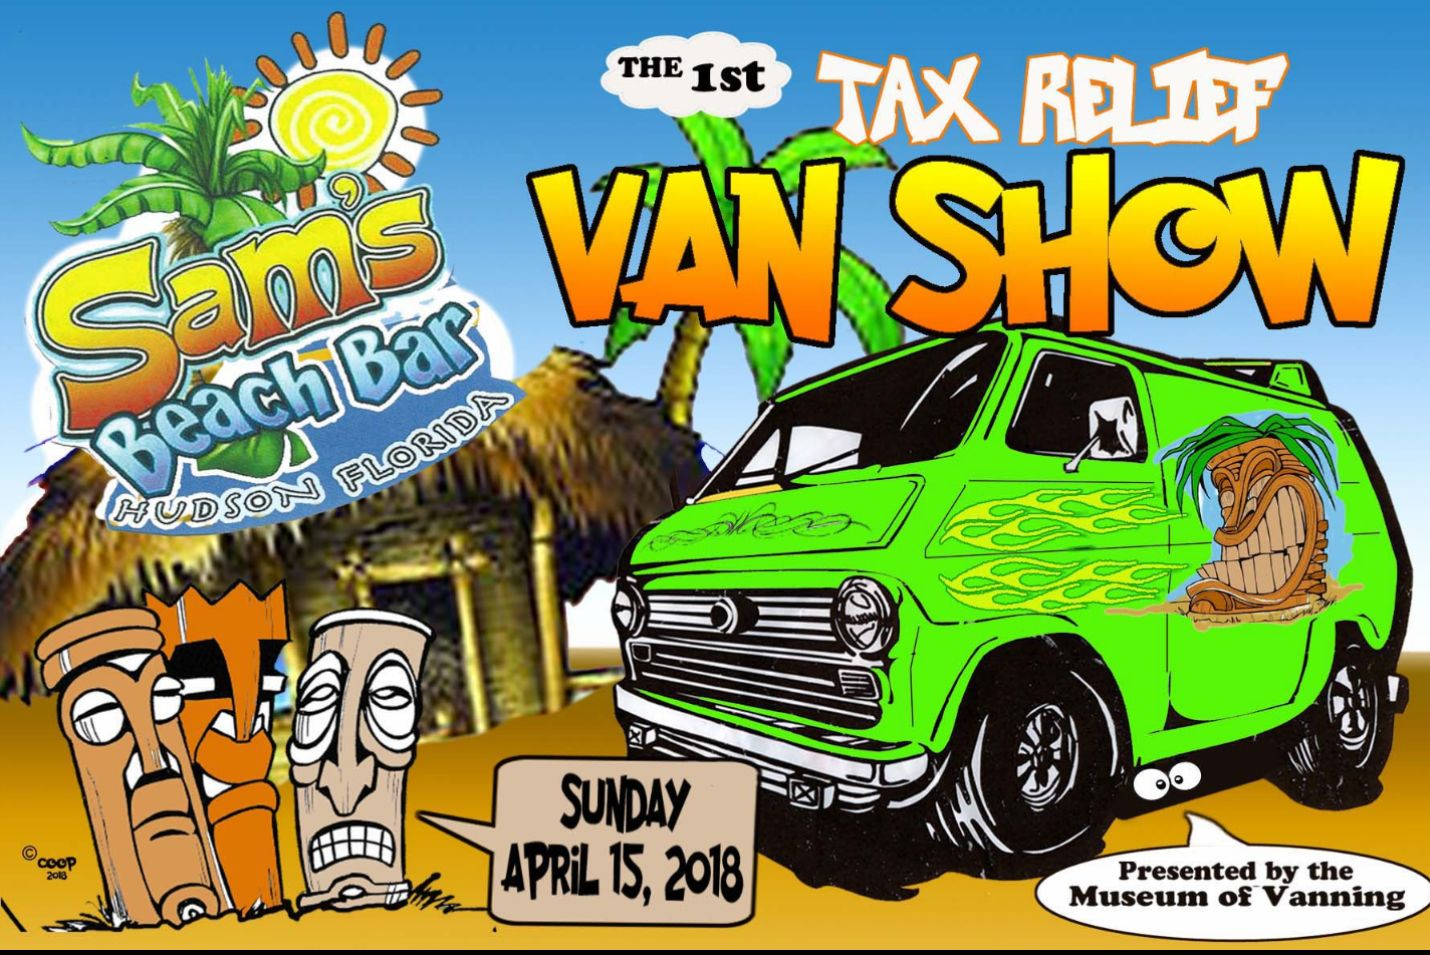 Sam's Tiki Bar Van Show